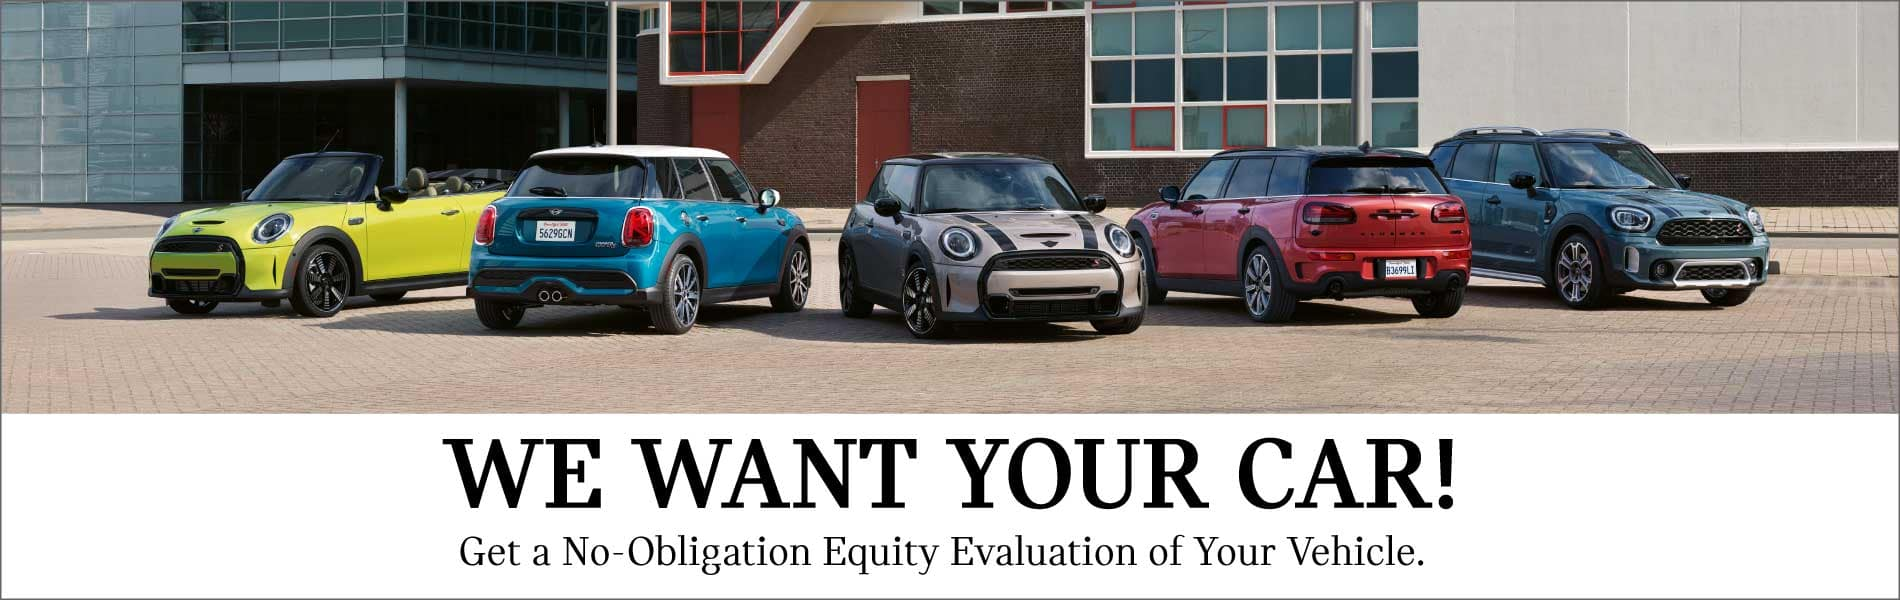 We want to buy your car! Get a no-obligation equity evaluation of your vehicle.